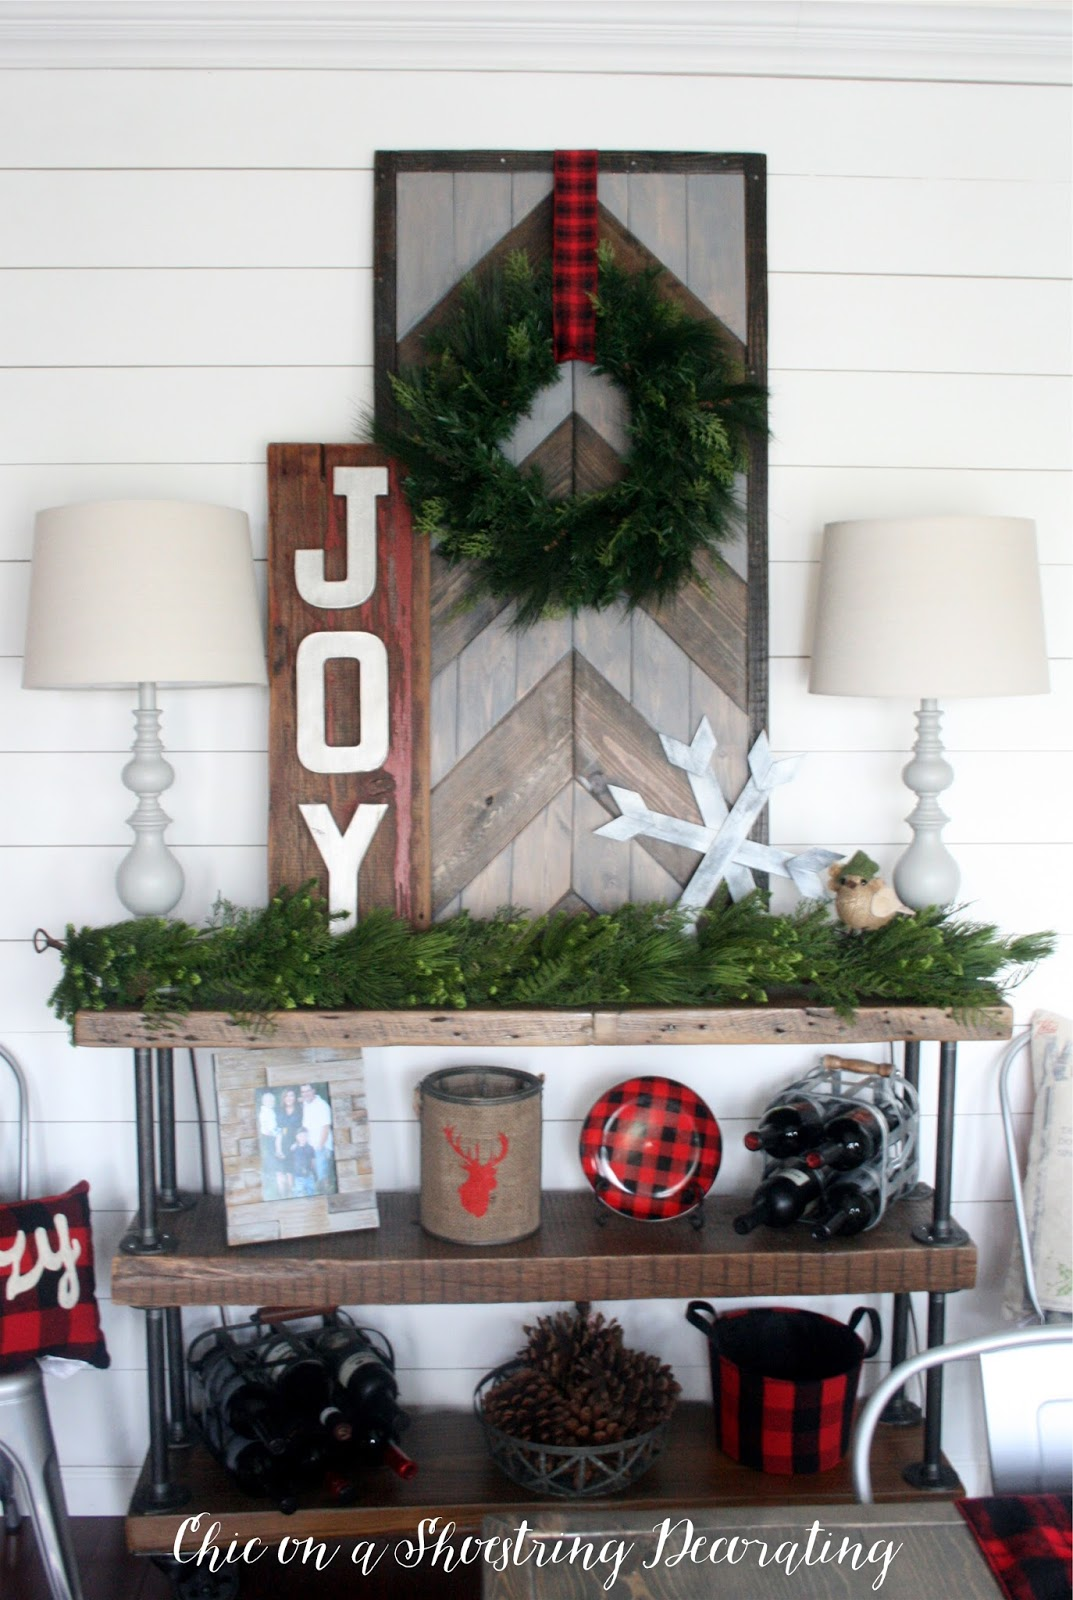 Chic on a Shoestring Decorating My Farmhouse Shiplap Kitchen Merry & Bright Holiday Home Blog